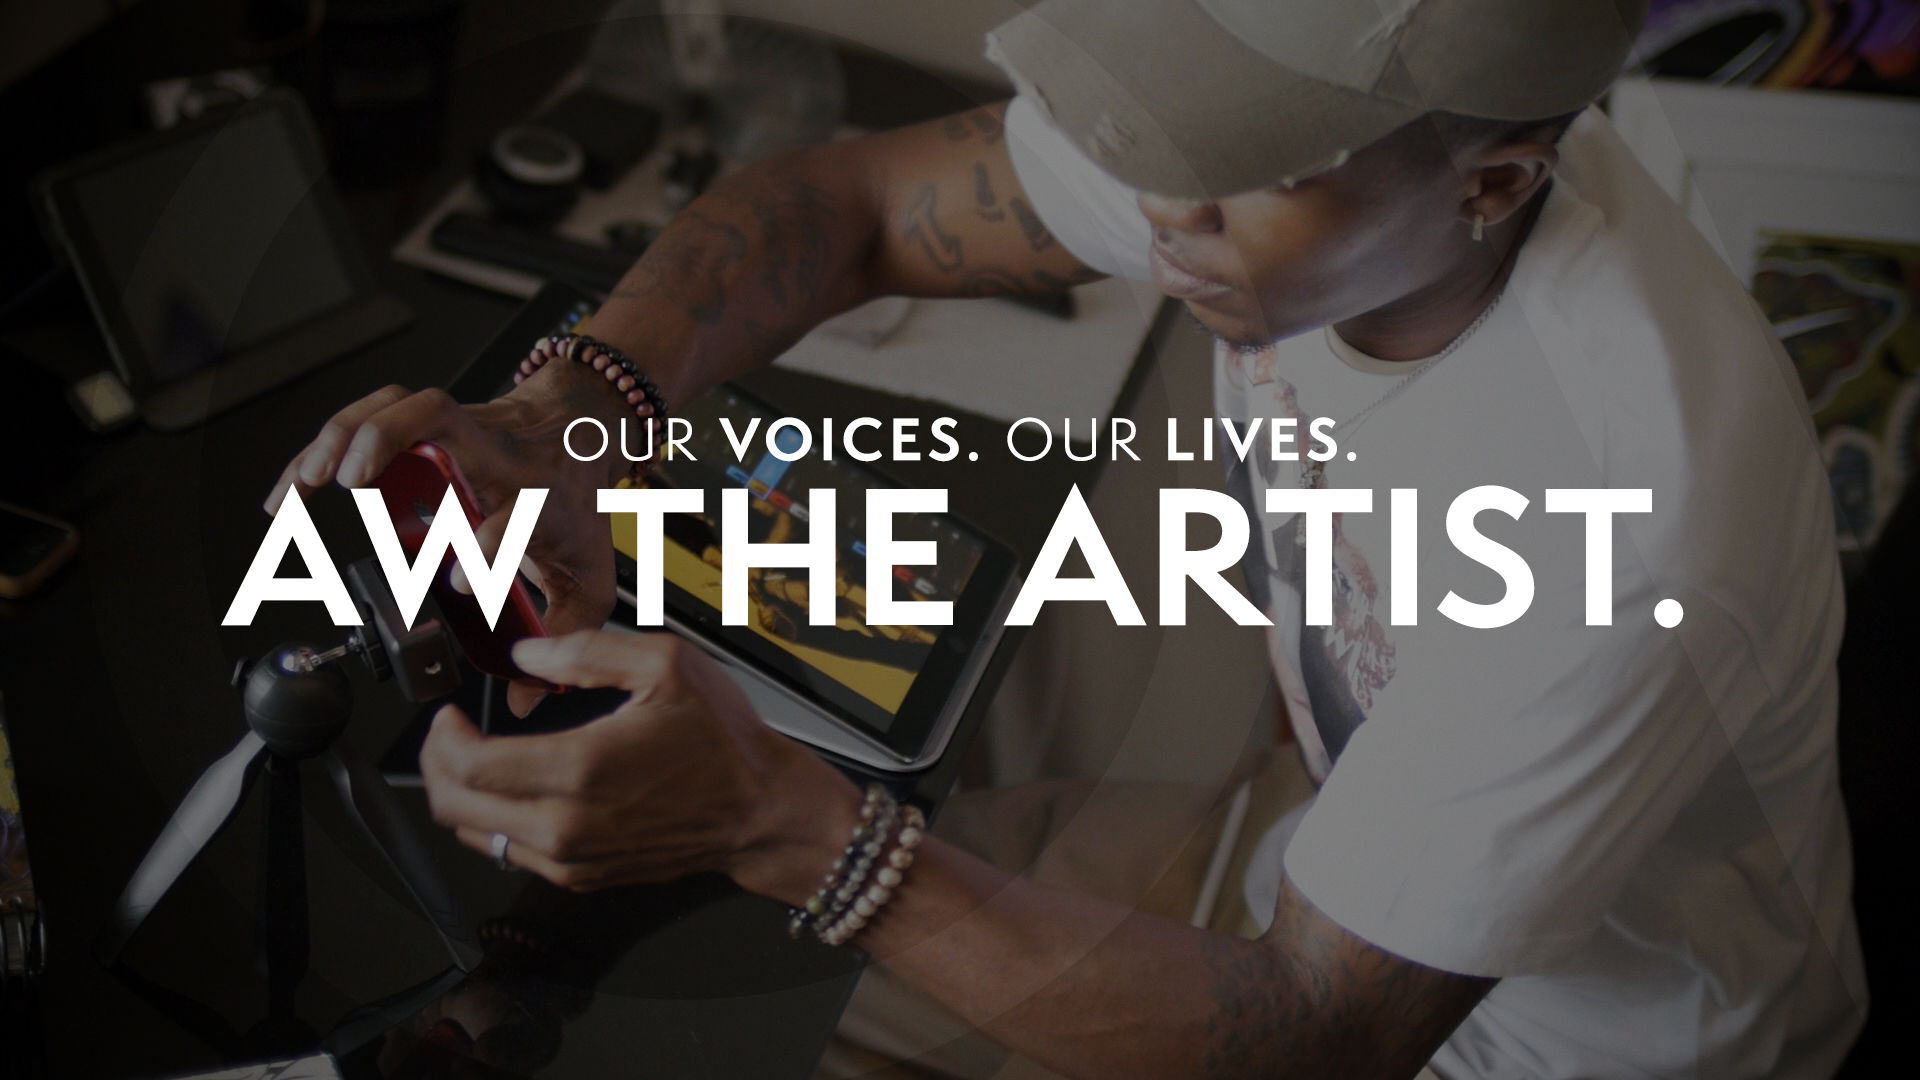 Our Voices. Our Lives. presents AW THE ARTIST.